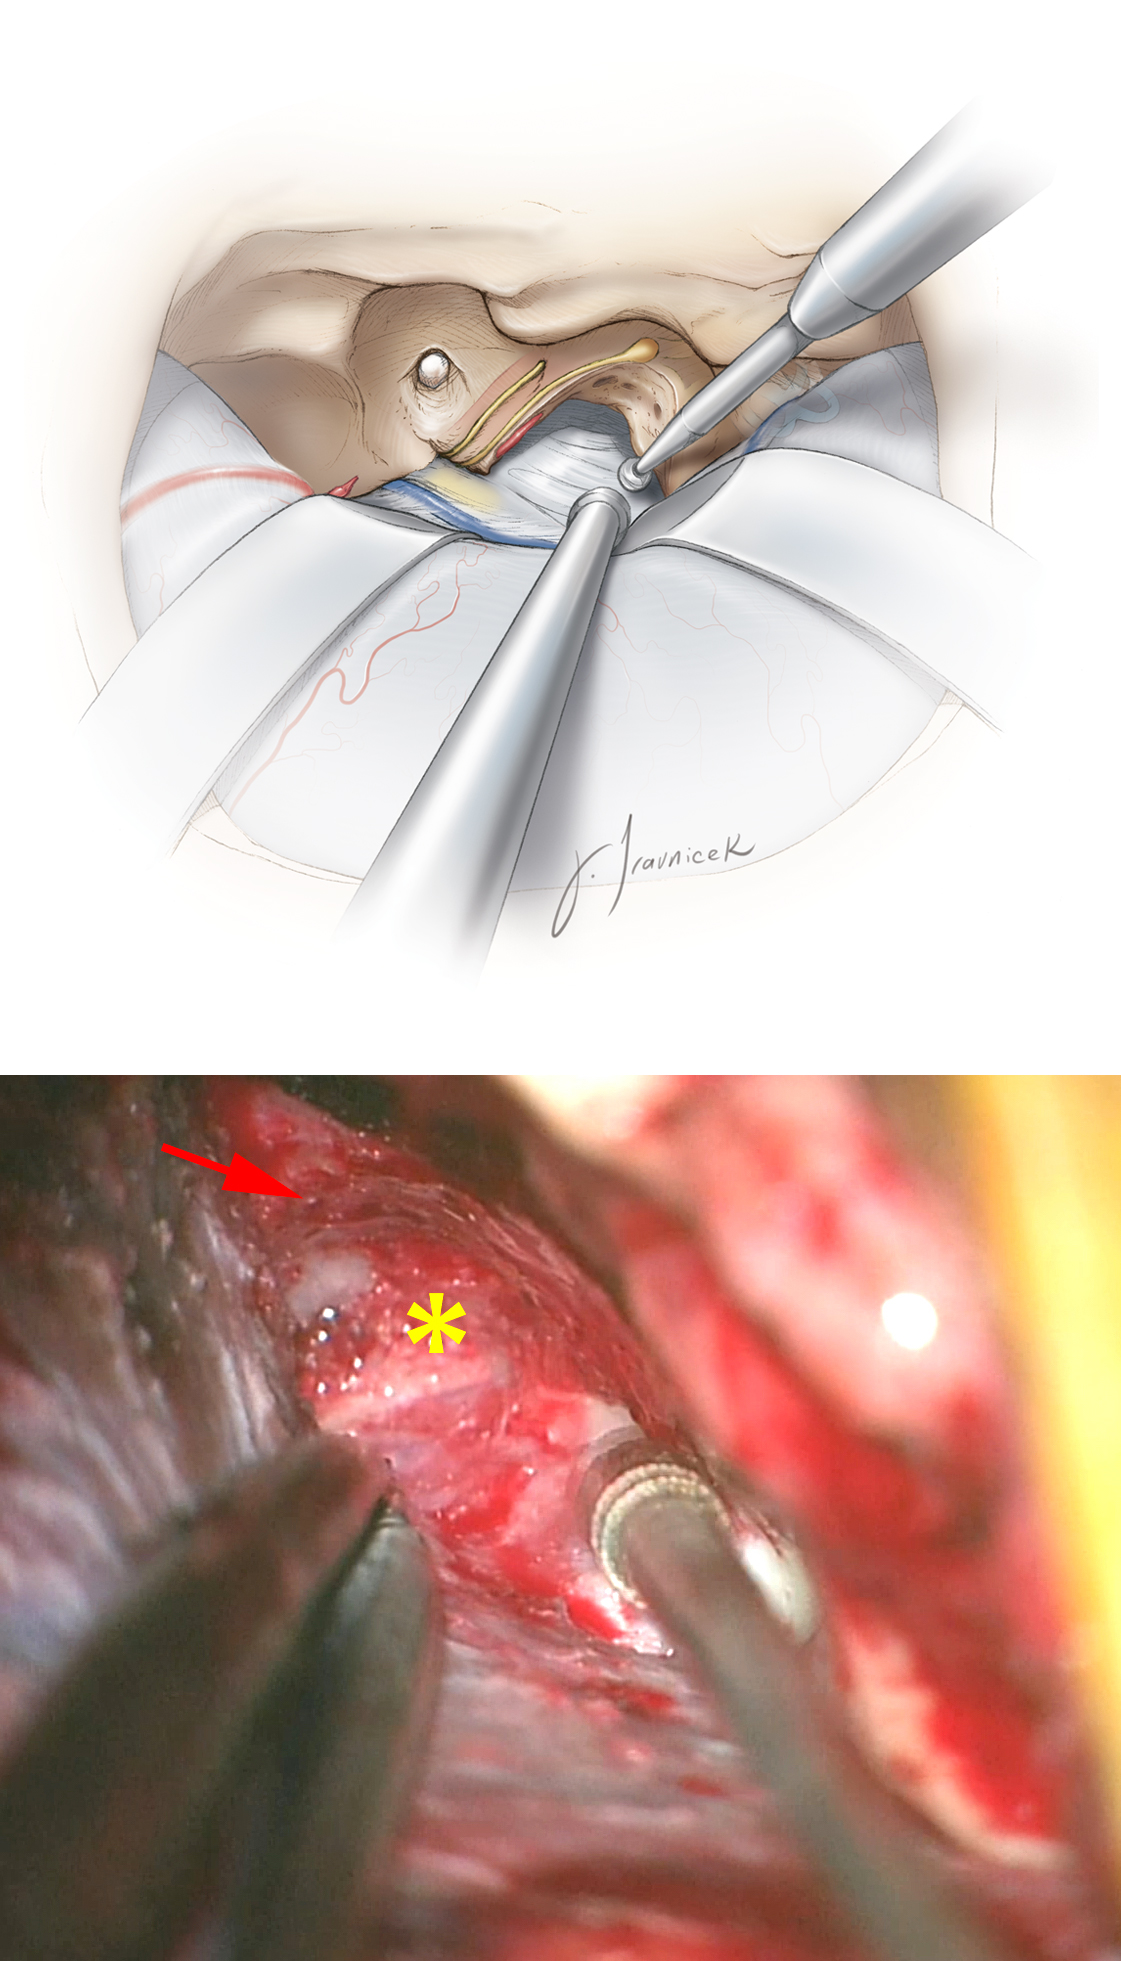 Figure 14: All of the bone between the V3 anteriorly, the ICA and the cochlea laterally, and the superior semicircular canal and the IAC posteriorly is drilled away until the dura of the posterior fossa is reached, thereby completing the anterior transpetrosal osteotomy. A monopolar stimulating probe may be used for transdural mapping of the facial nerve. The bone along the margins of the cochlea is very compact and distinguishable from the cancellous bone of the petrous apex. Moreover, resection of bone can proceed beneath the trigeminal nerve as far as the lateral aspect of the clivus (*); however, the operator must take great care to prevent injury to cranial nerve V. Also, copious irrigation is necessary to prevent thermal injury to cranial nerve VI in the Dorello's canal while drilling the medial extent of exposure. The operative corridor can be even further extended caudally by following the posterior fossa dura as far as the inferior petrosal sinus. The route of the carotid artery is marked with the red arrow. The posterior fossa dura is at the tip of the suction device.